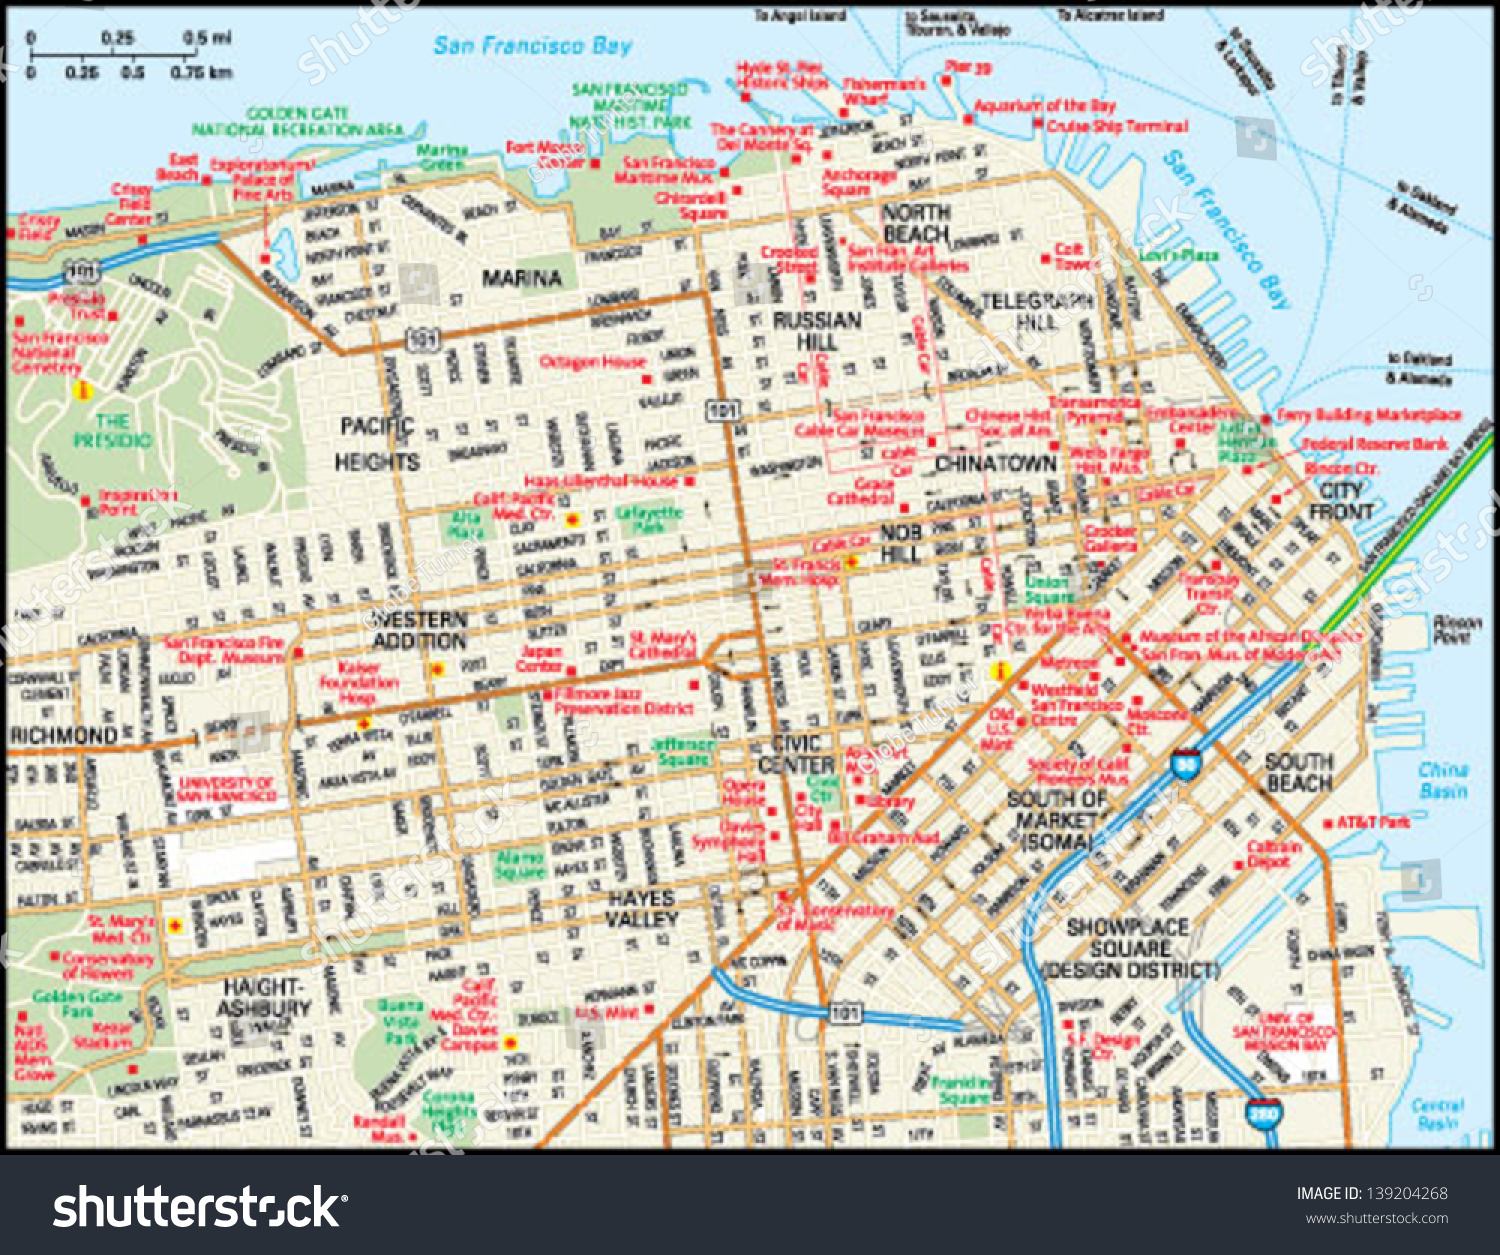 Downtown San Francisco Map on